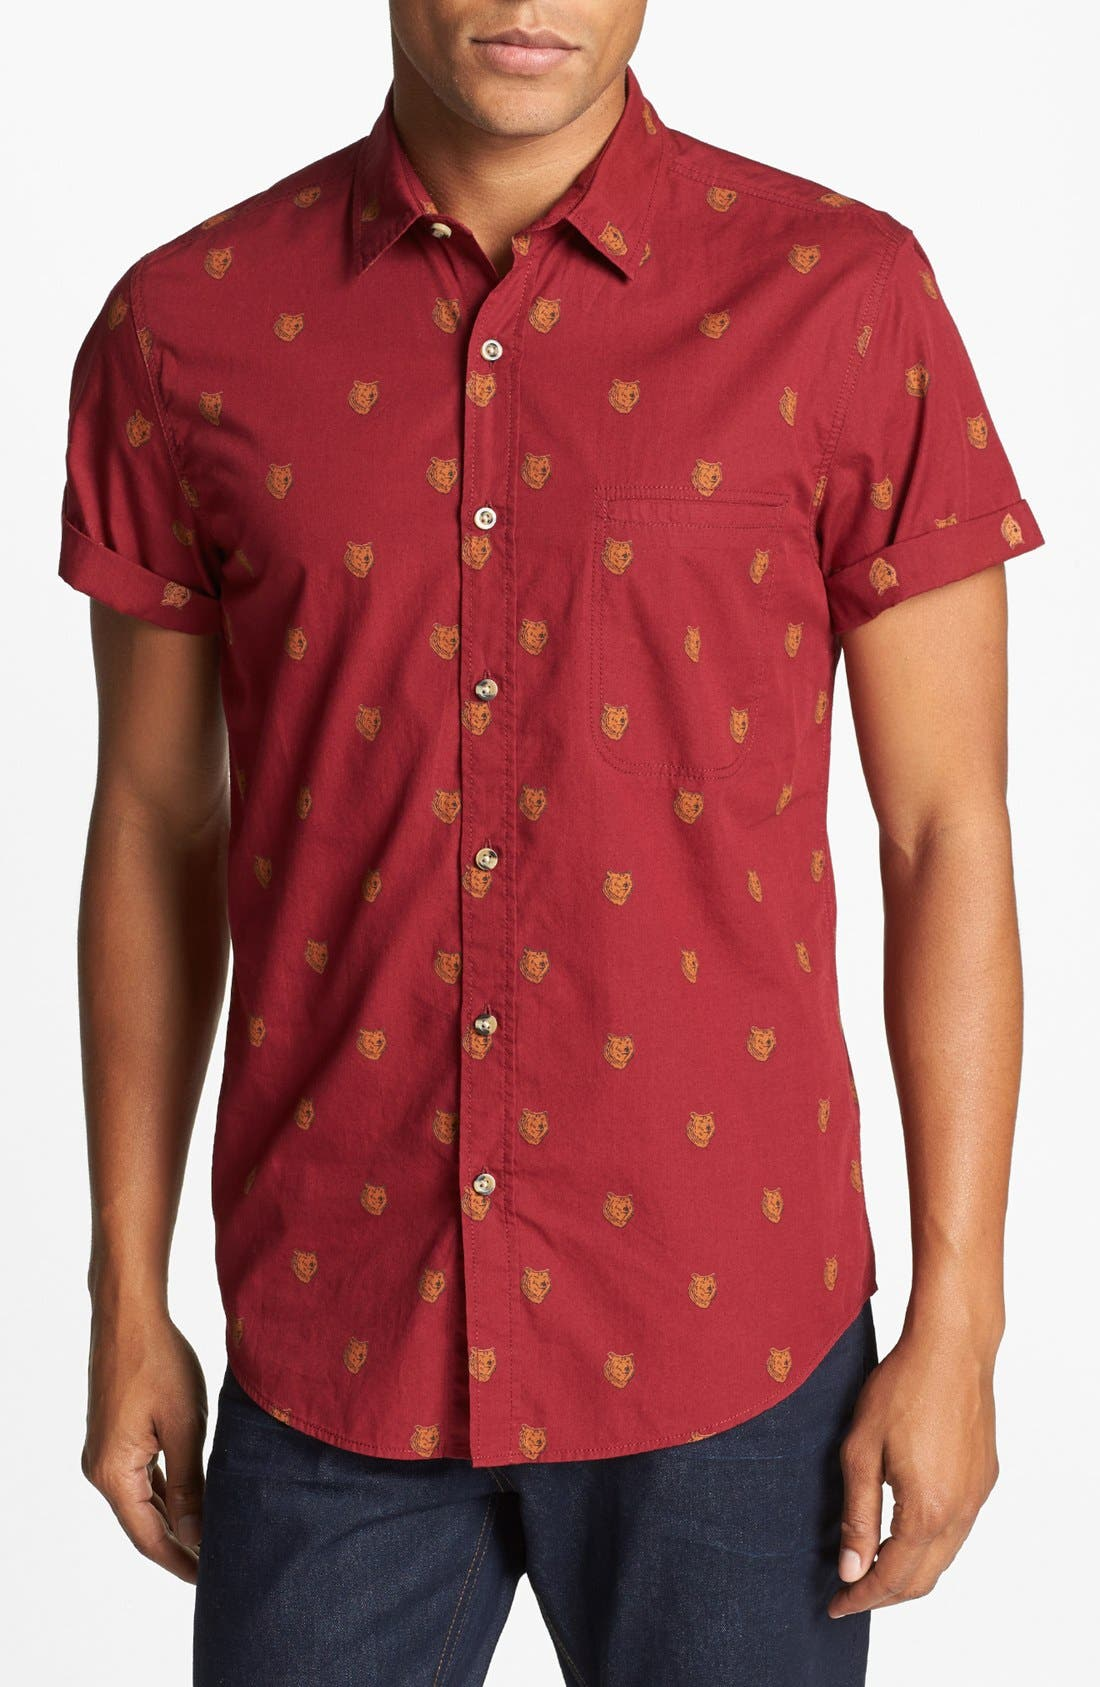 Alternate Image 1 Selected - Topman 'Bears - High Roller' Shirt